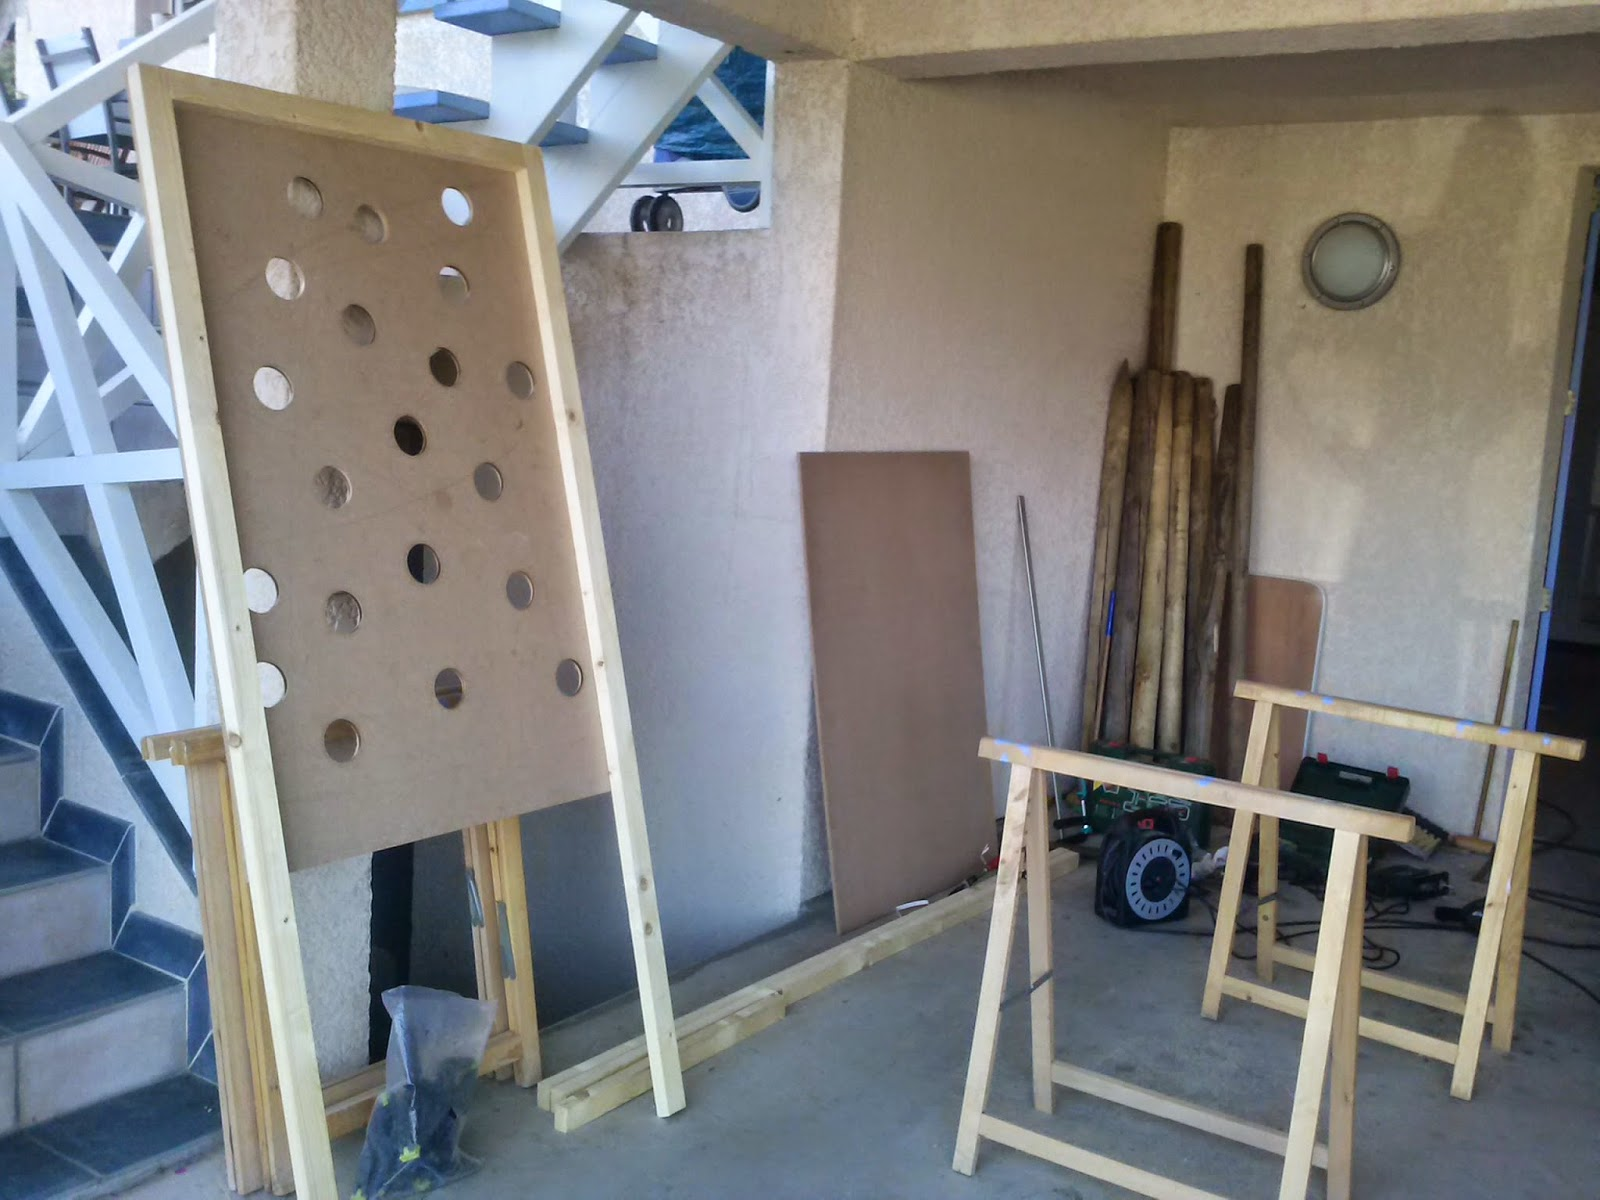 c fair play jeu en bois en cours de fabrication le. Black Bedroom Furniture Sets. Home Design Ideas